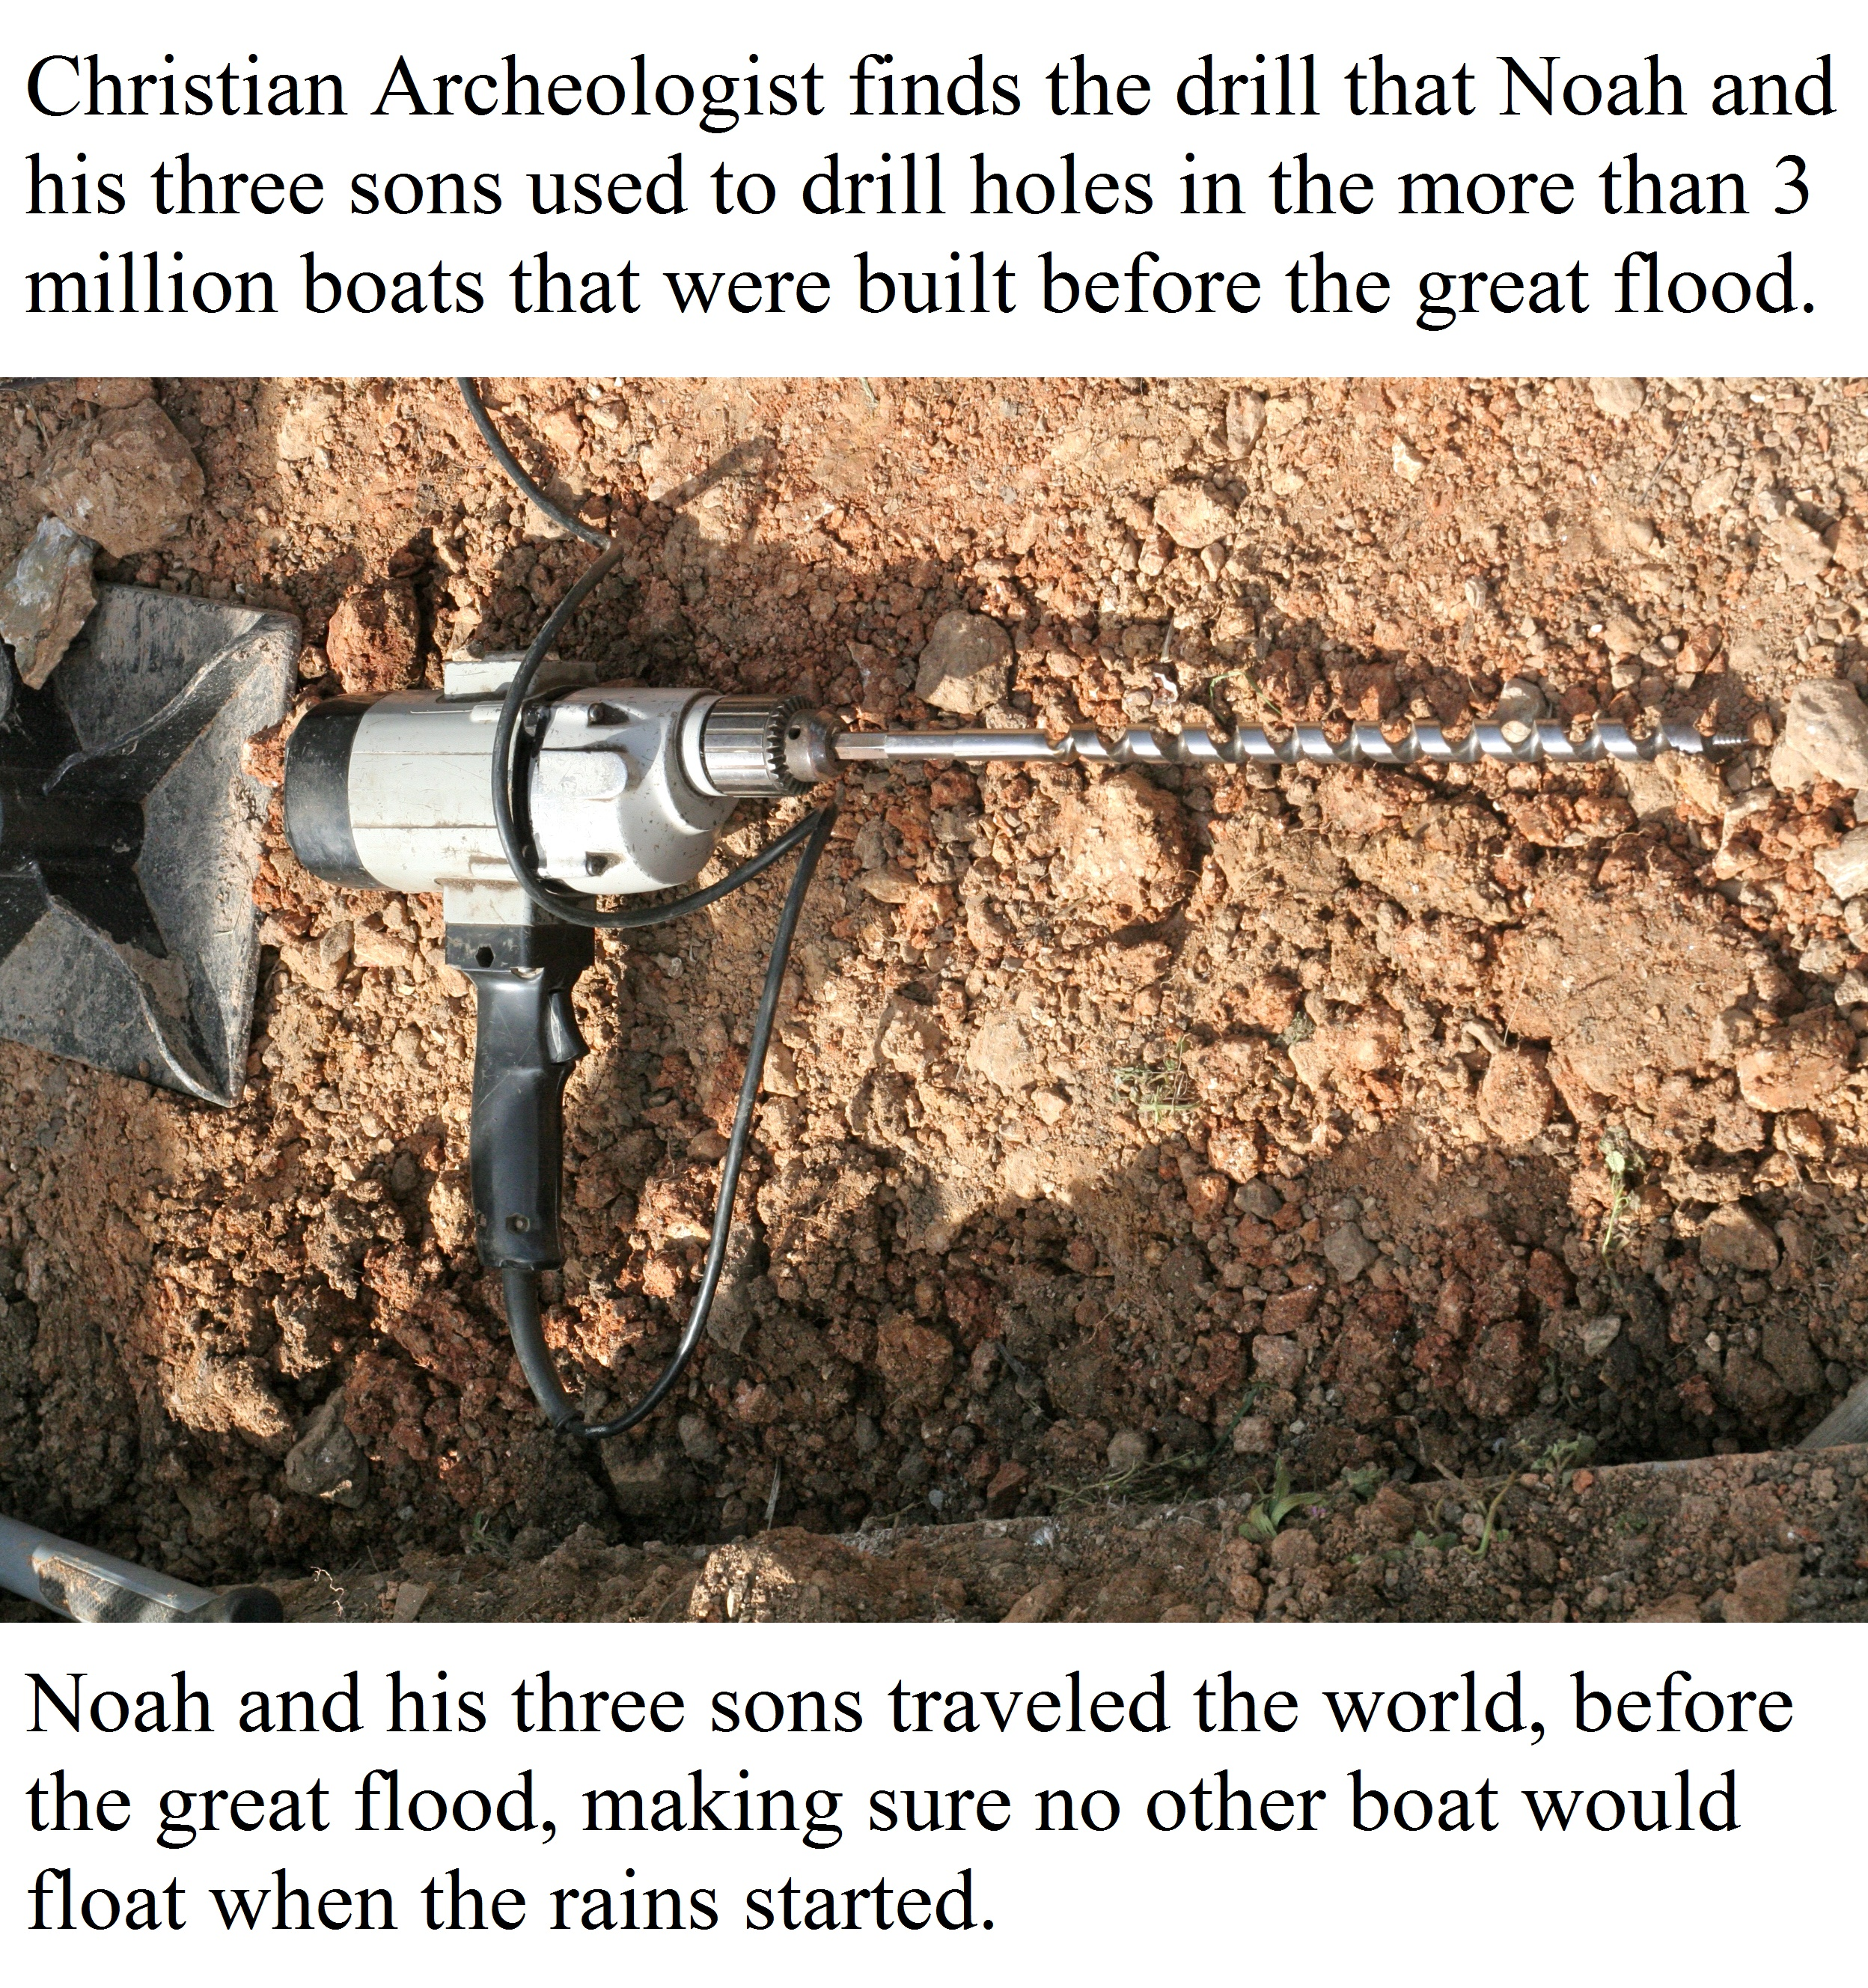 Christian Archeologist finds the drill that Noah and his three sons used to drill holes in the more than 3 million boats that were built before the great flood.